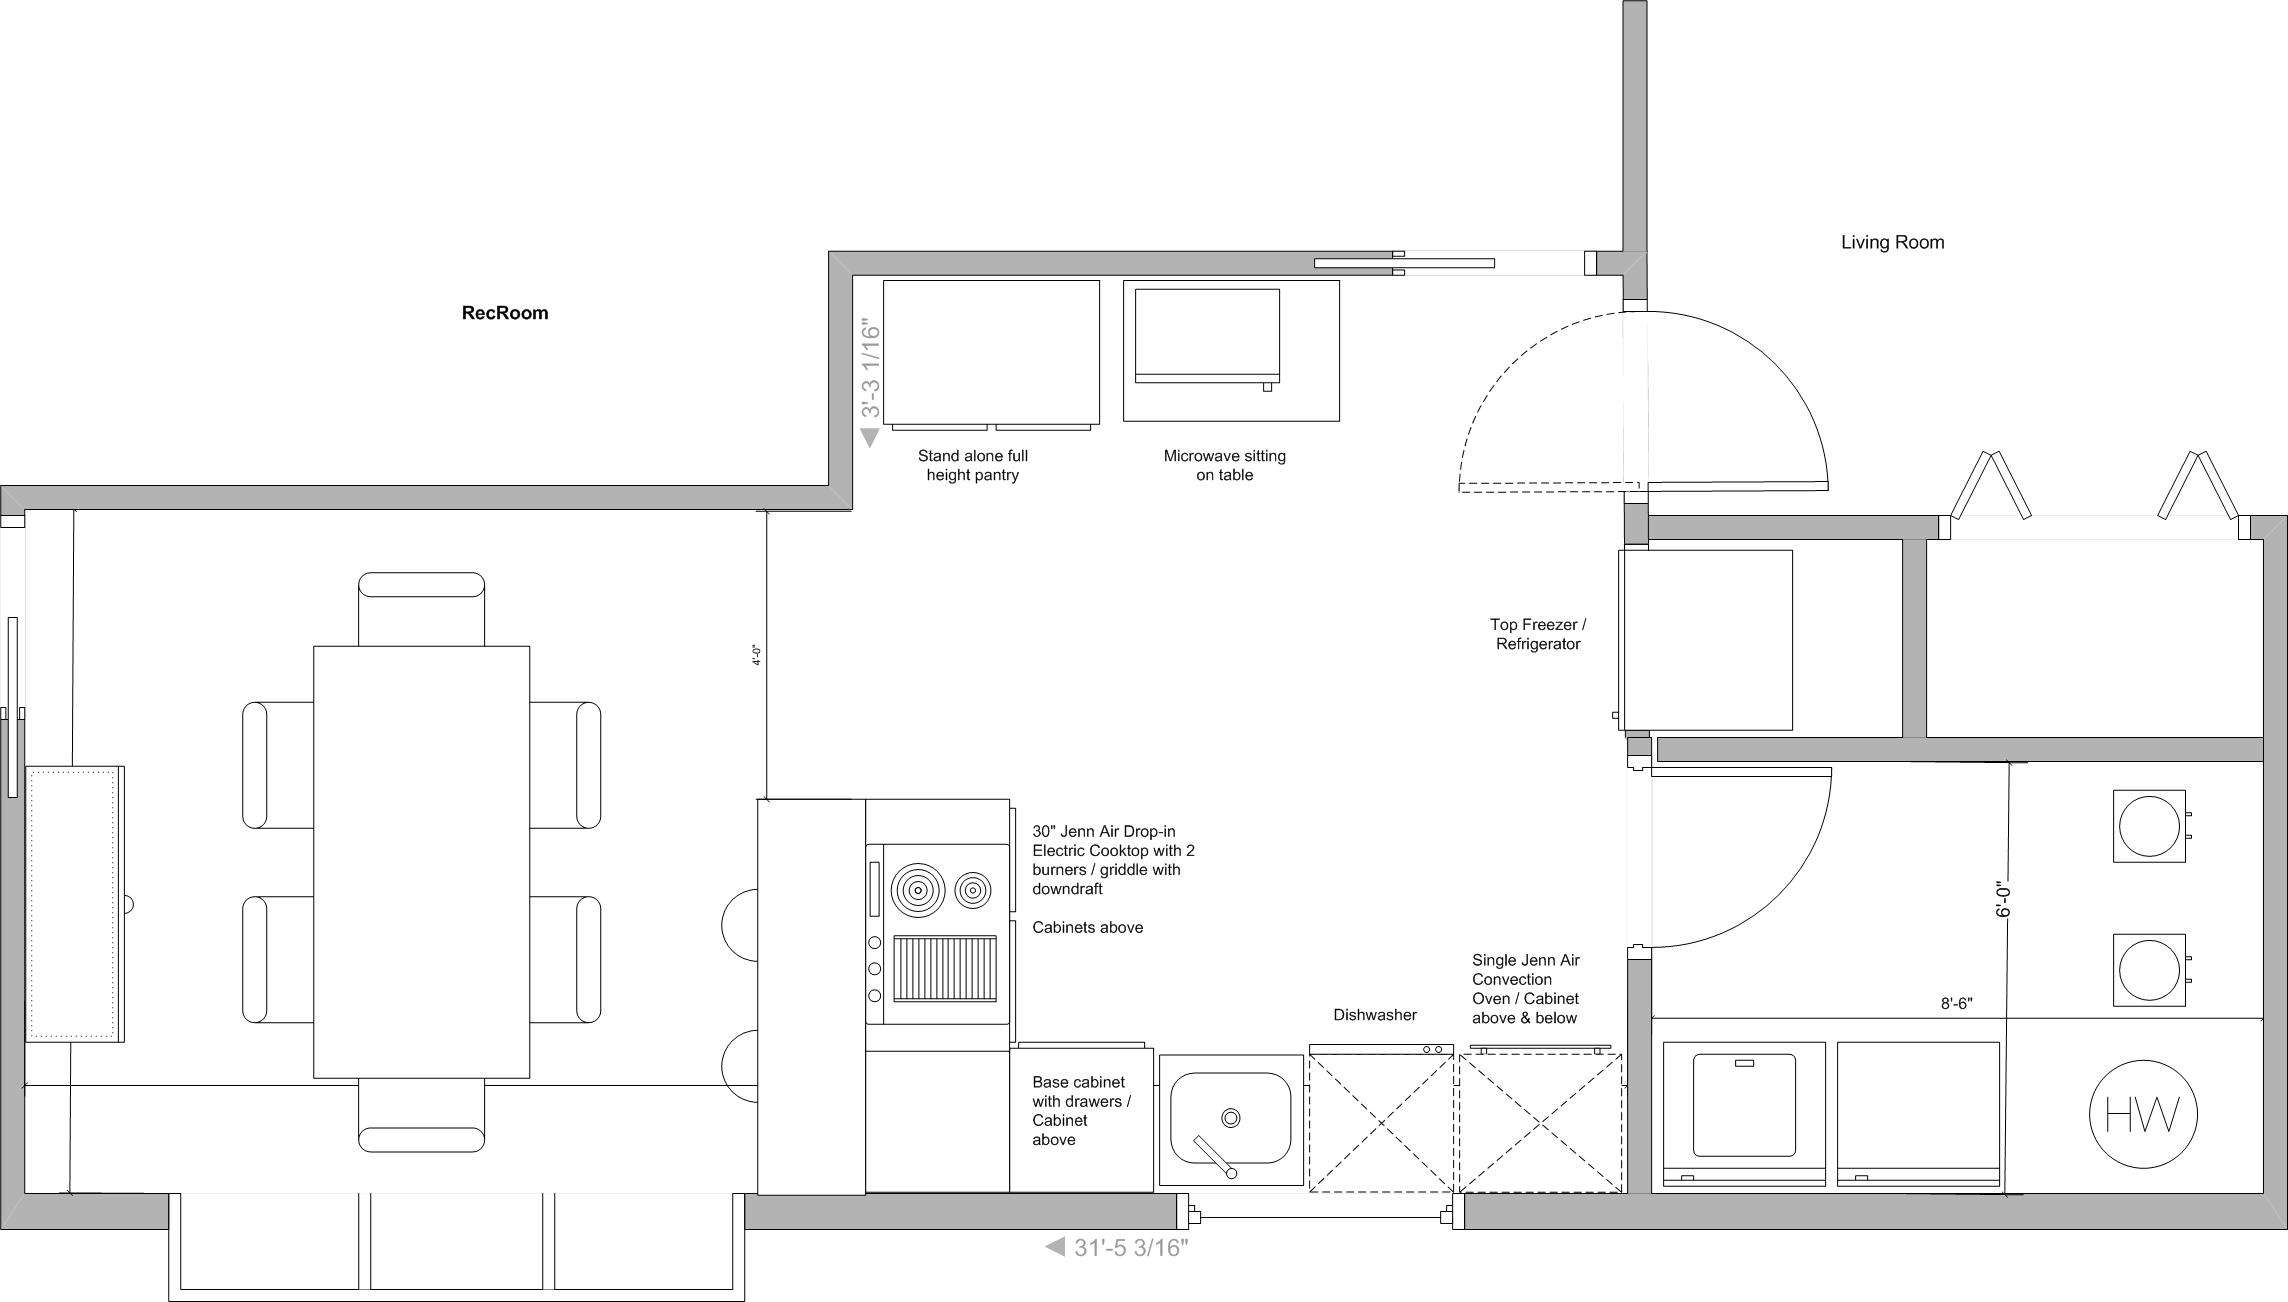 Room Plans Besf Ideas Design Layout